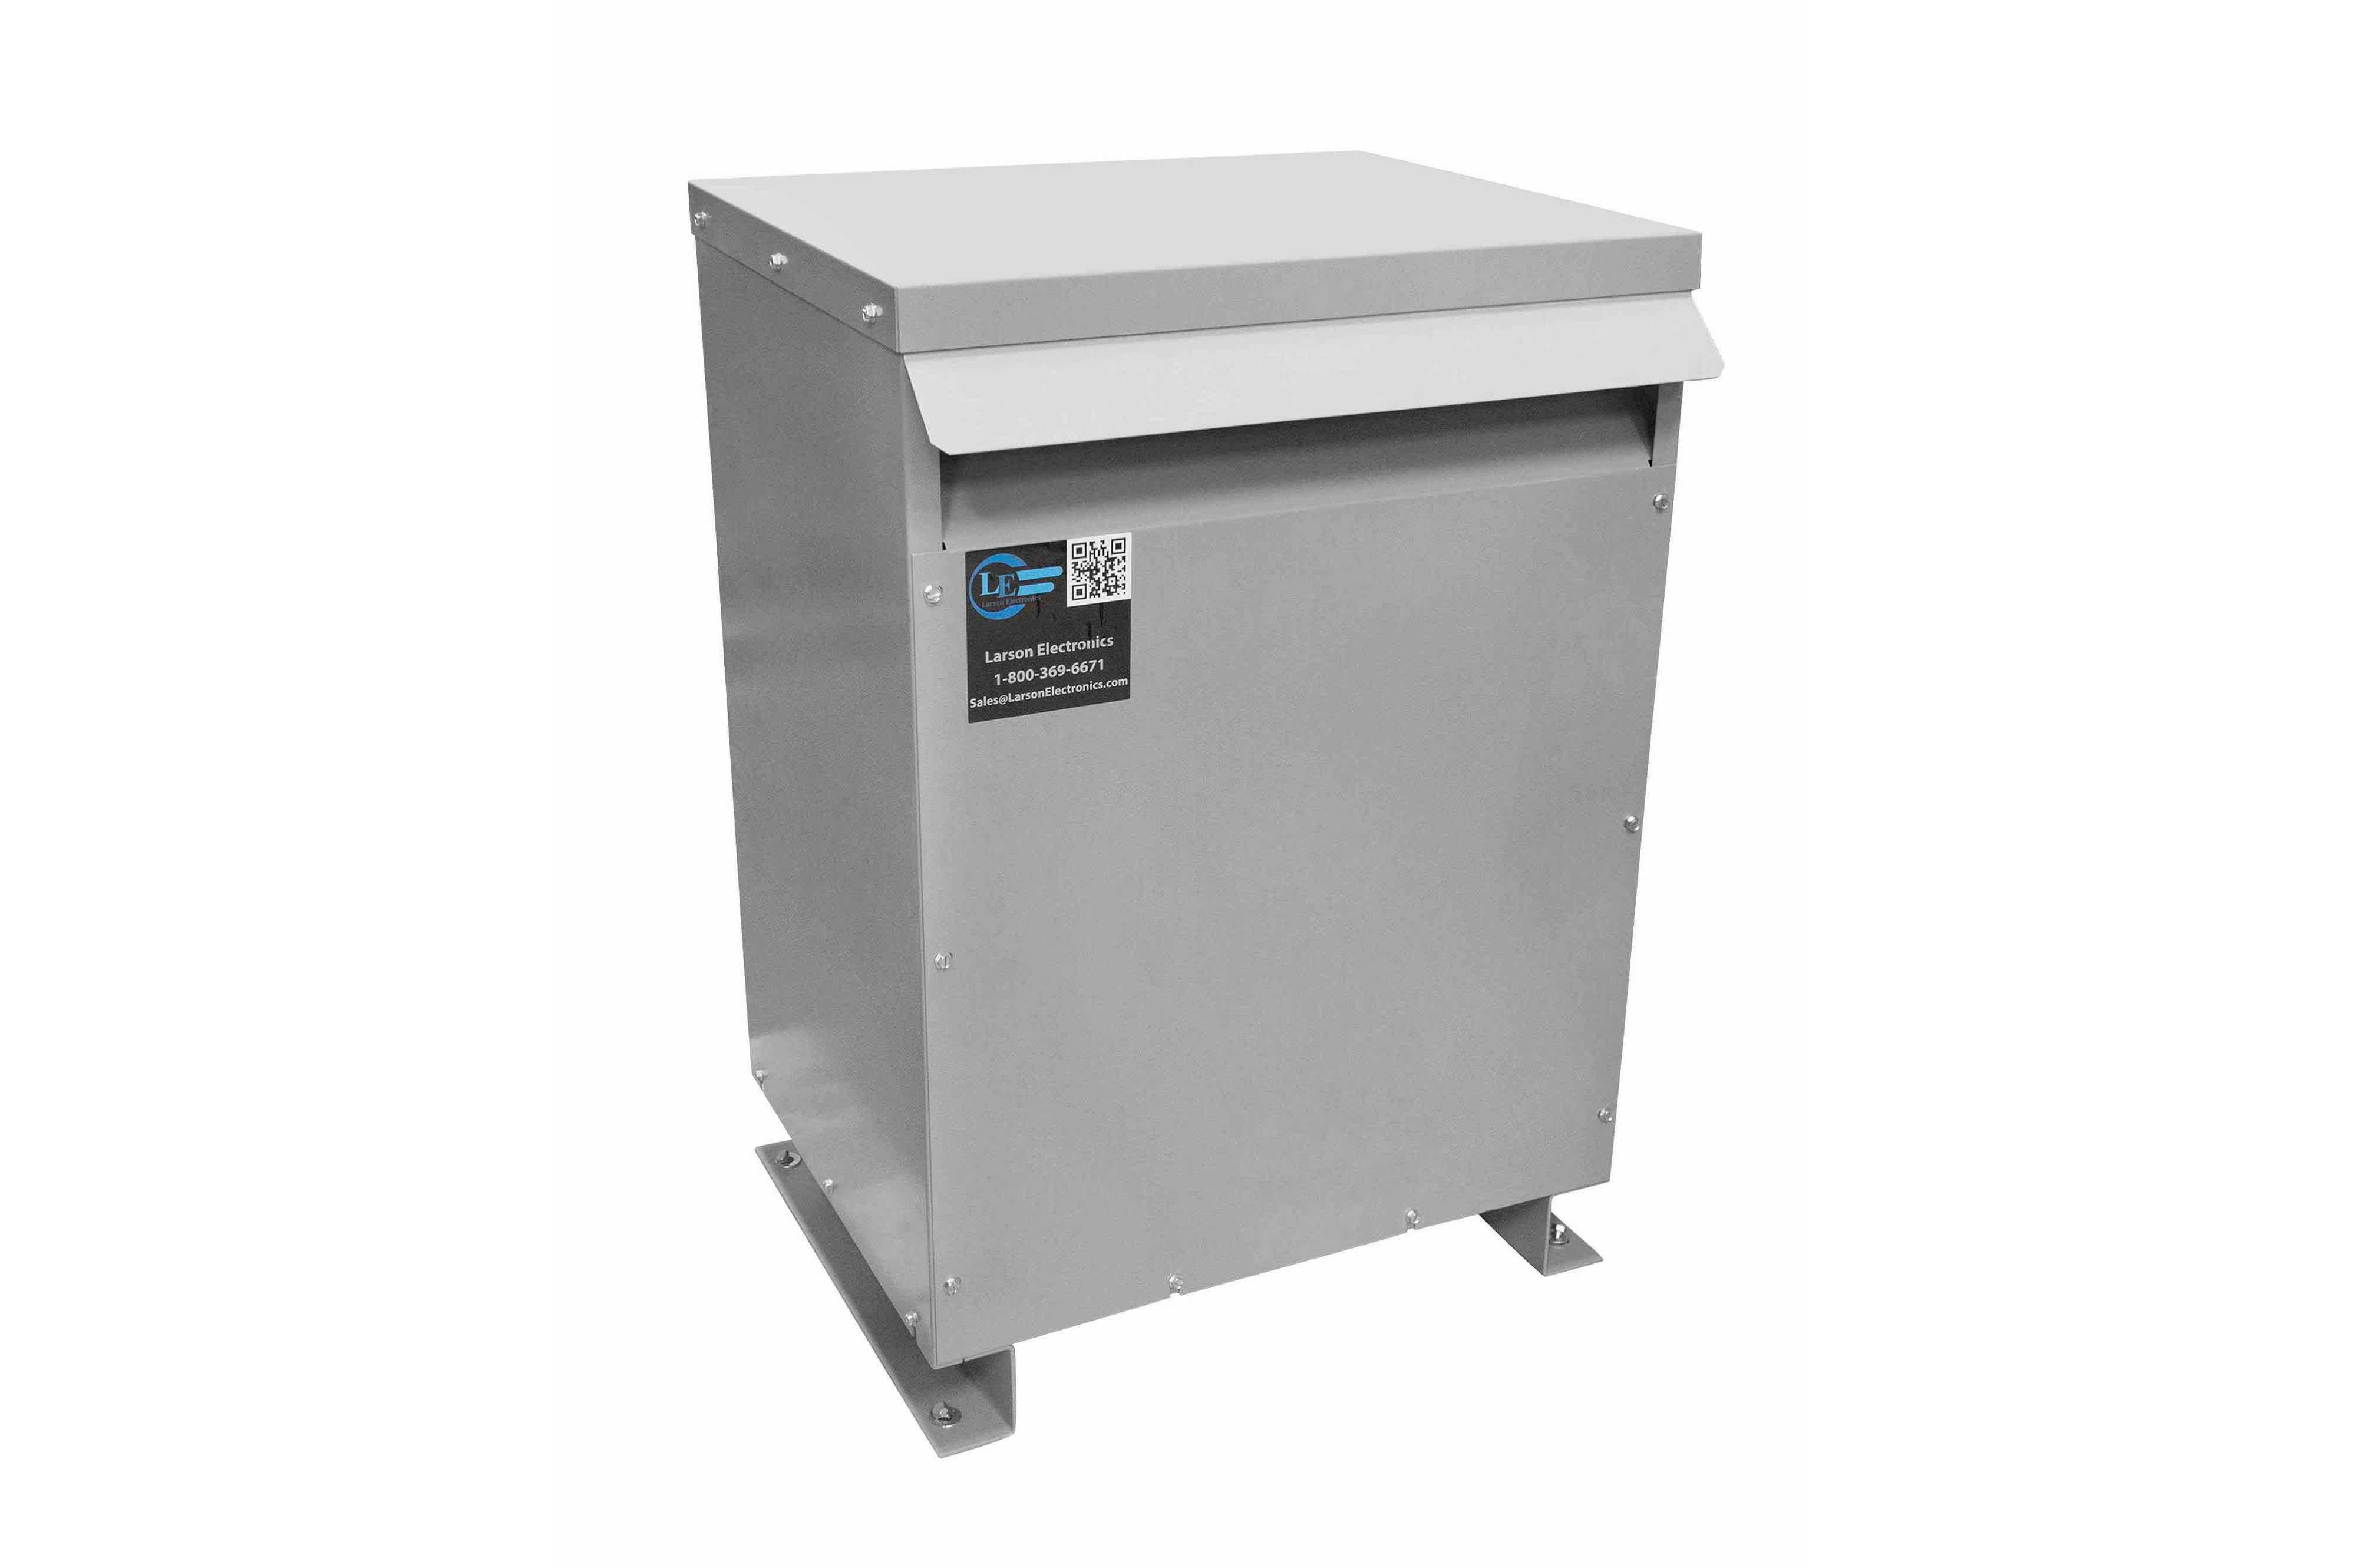 20 kVA 3PH Isolation Transformer, 400V Delta Primary, 208V Delta Secondary, N3R, Ventilated, 60 Hz